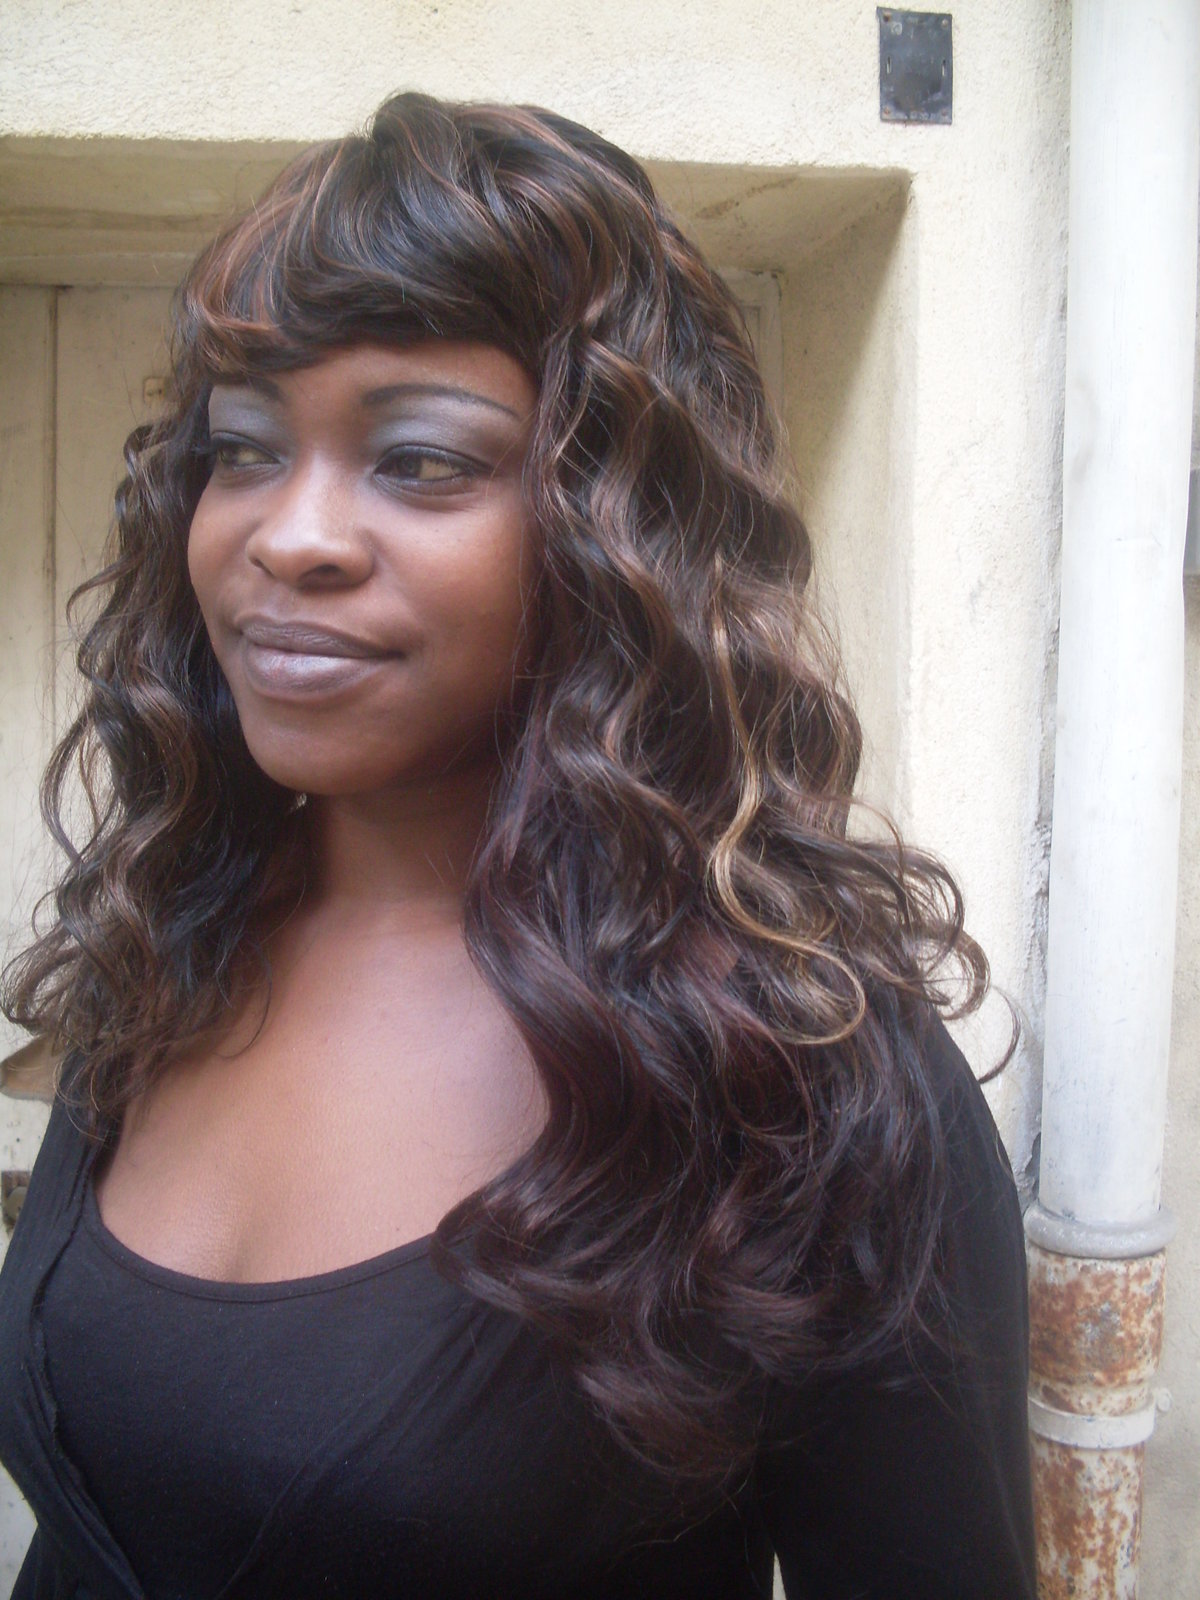 Coiffure Mariage Tissage Tissage Semi Long Idées Coiffure Afro Tresses